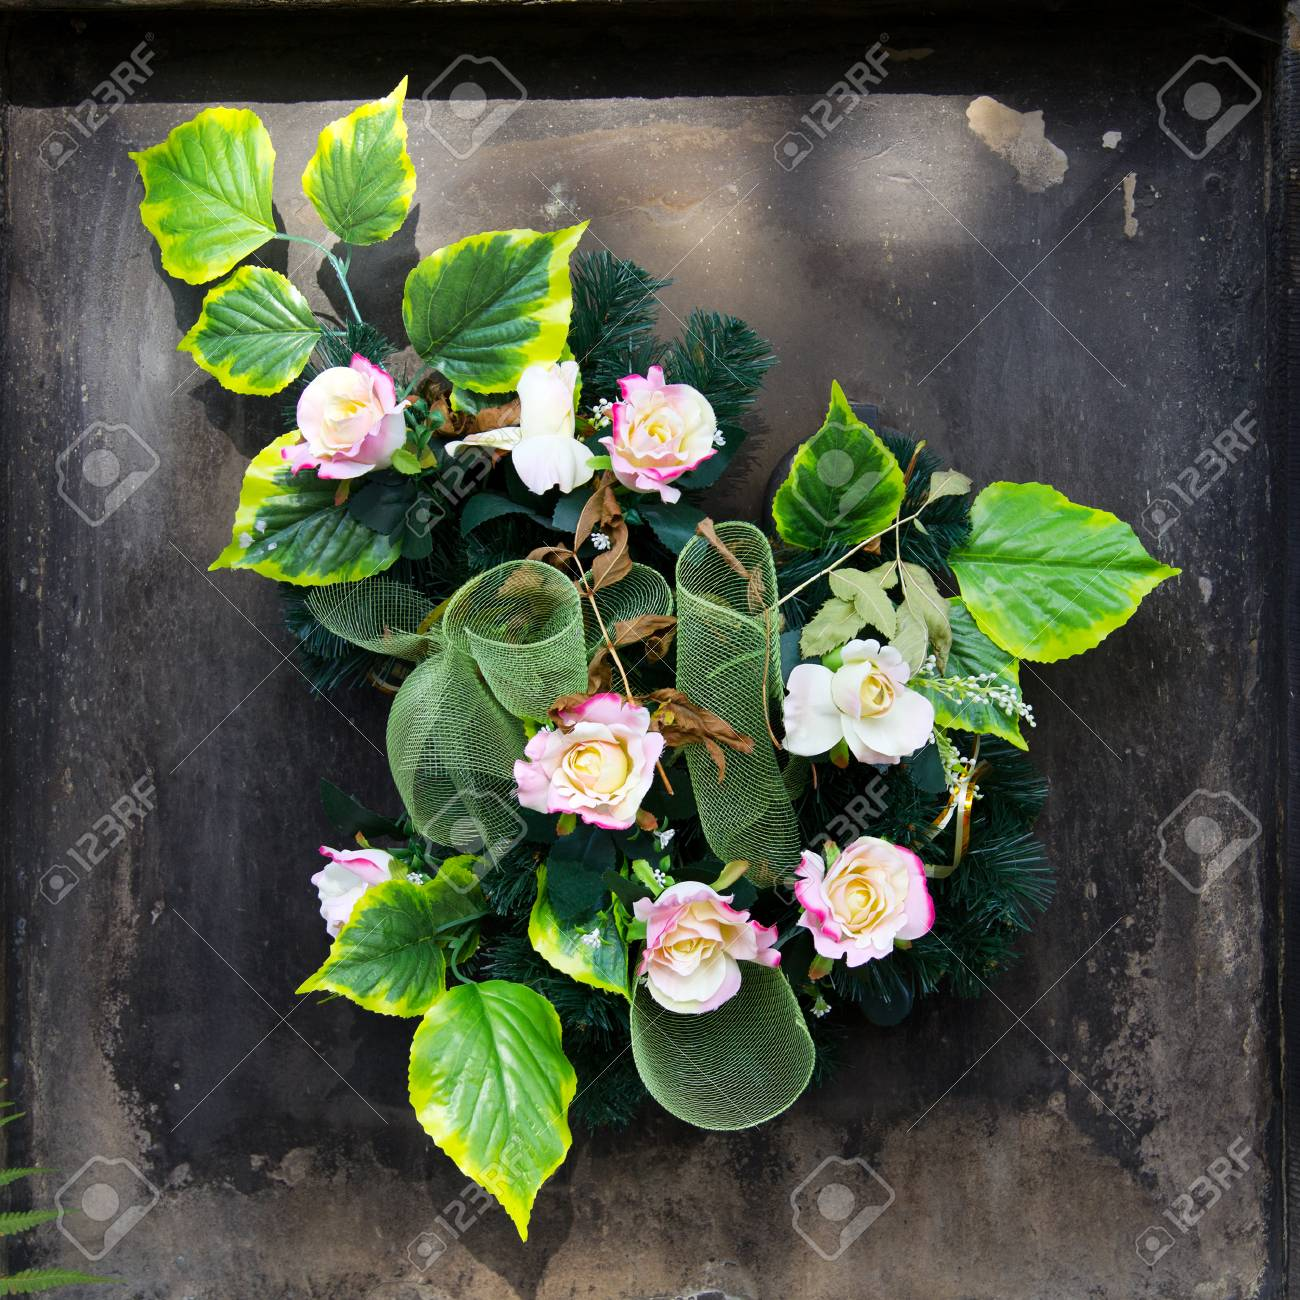 Artificial Flowers Bouquet On The Grave. Cemetery Decorations Stock ...